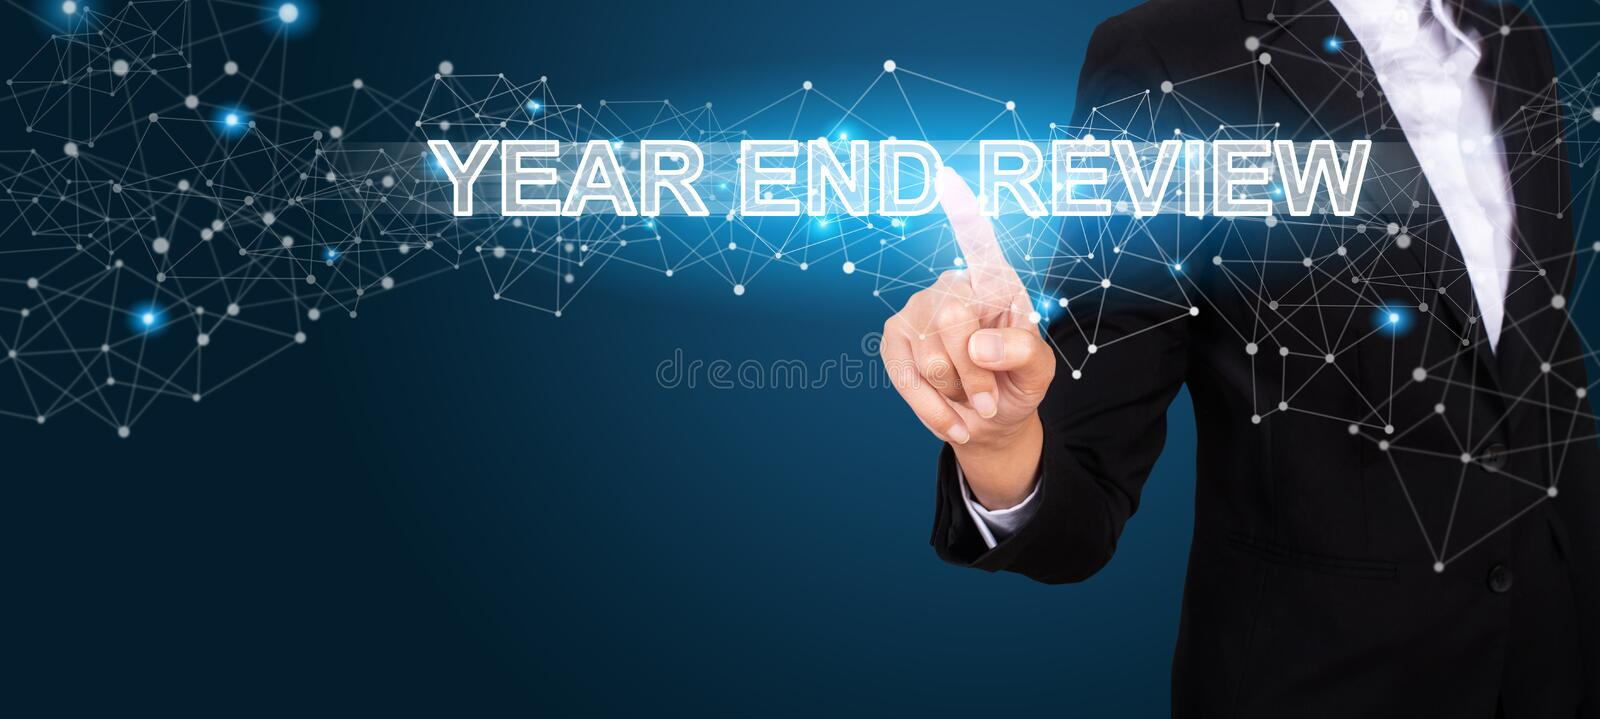 Year End Review concept with Hand of business pressing a button royalty free stock photo